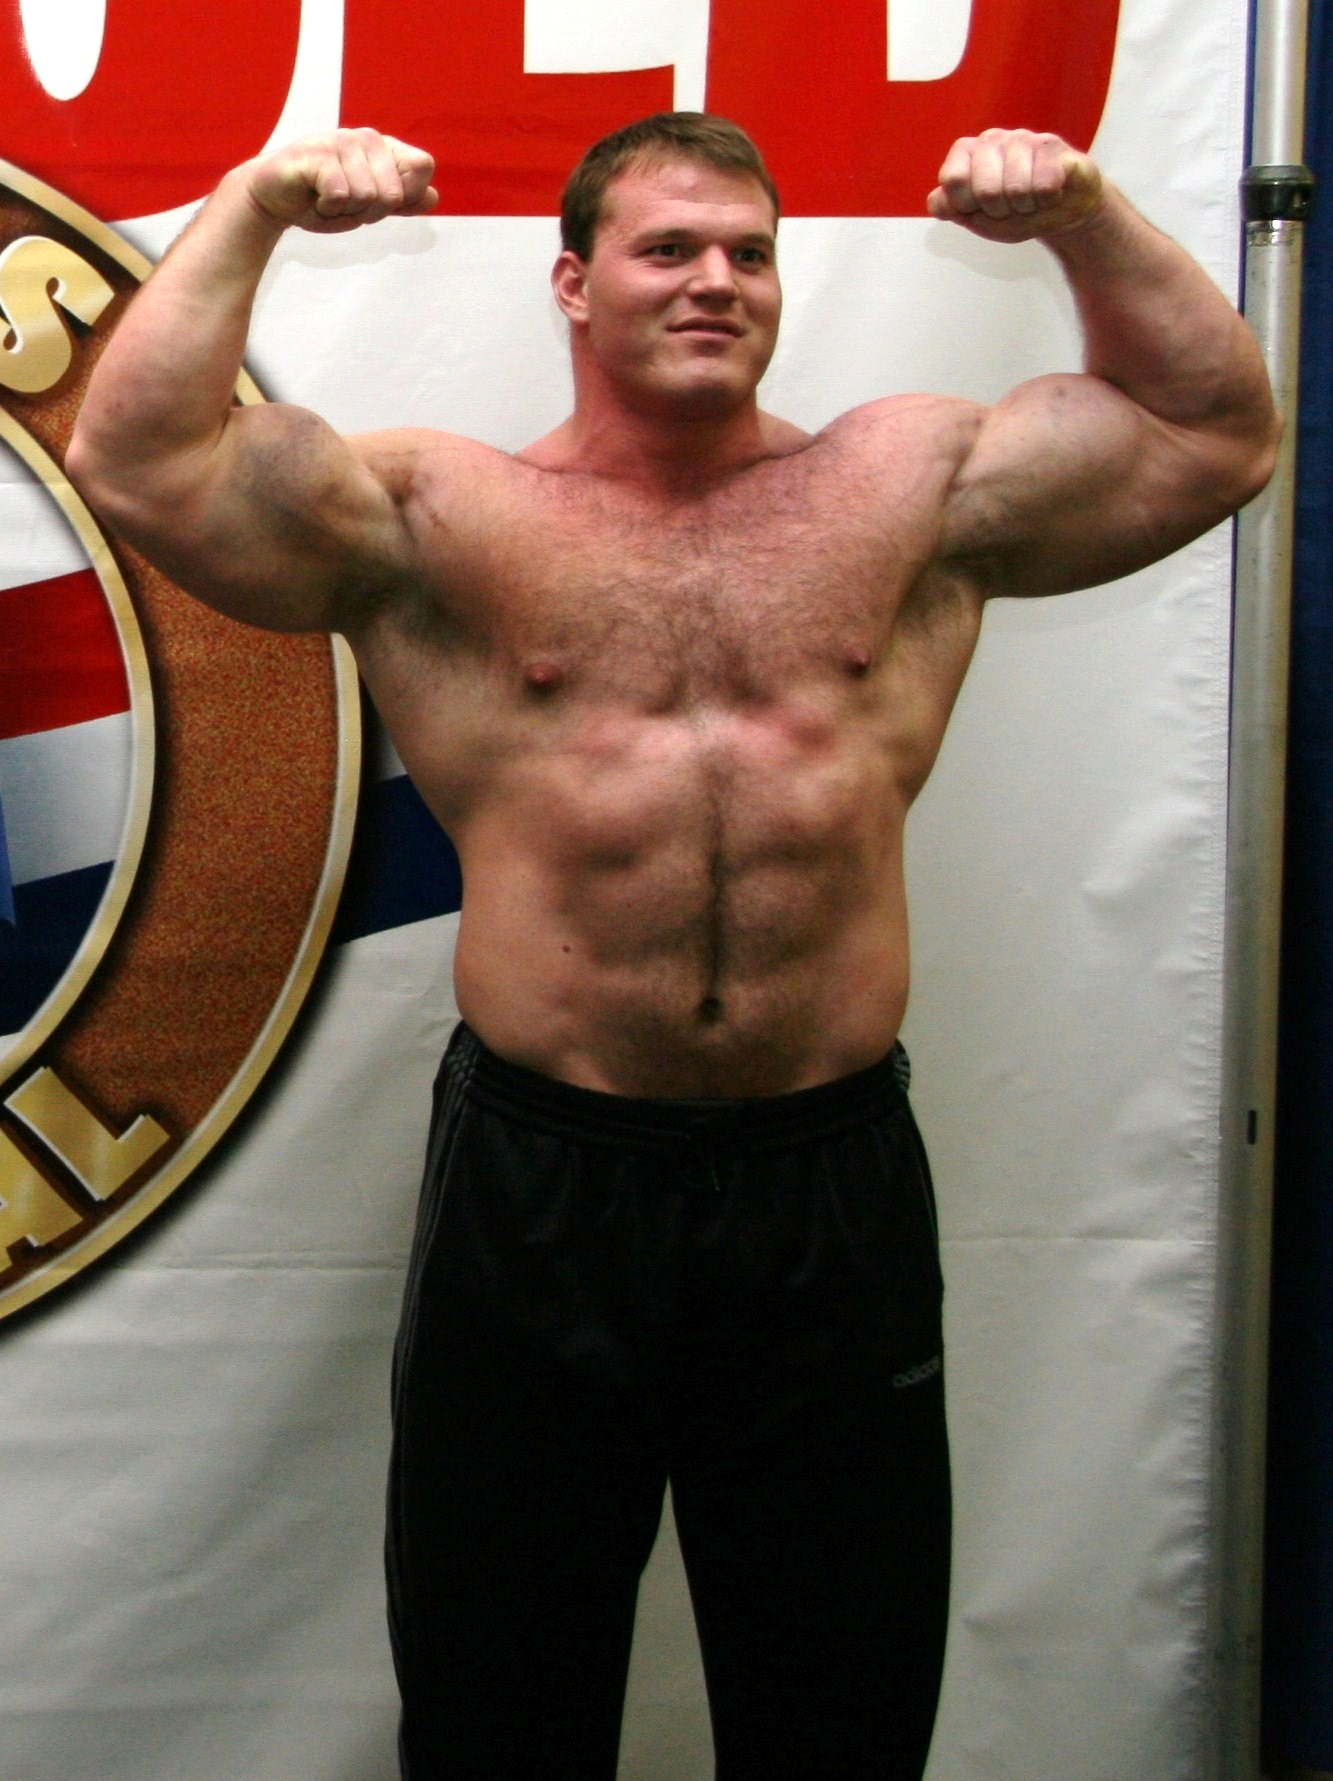 File:Derek Poundstone.JPG - Wikimedia Commons